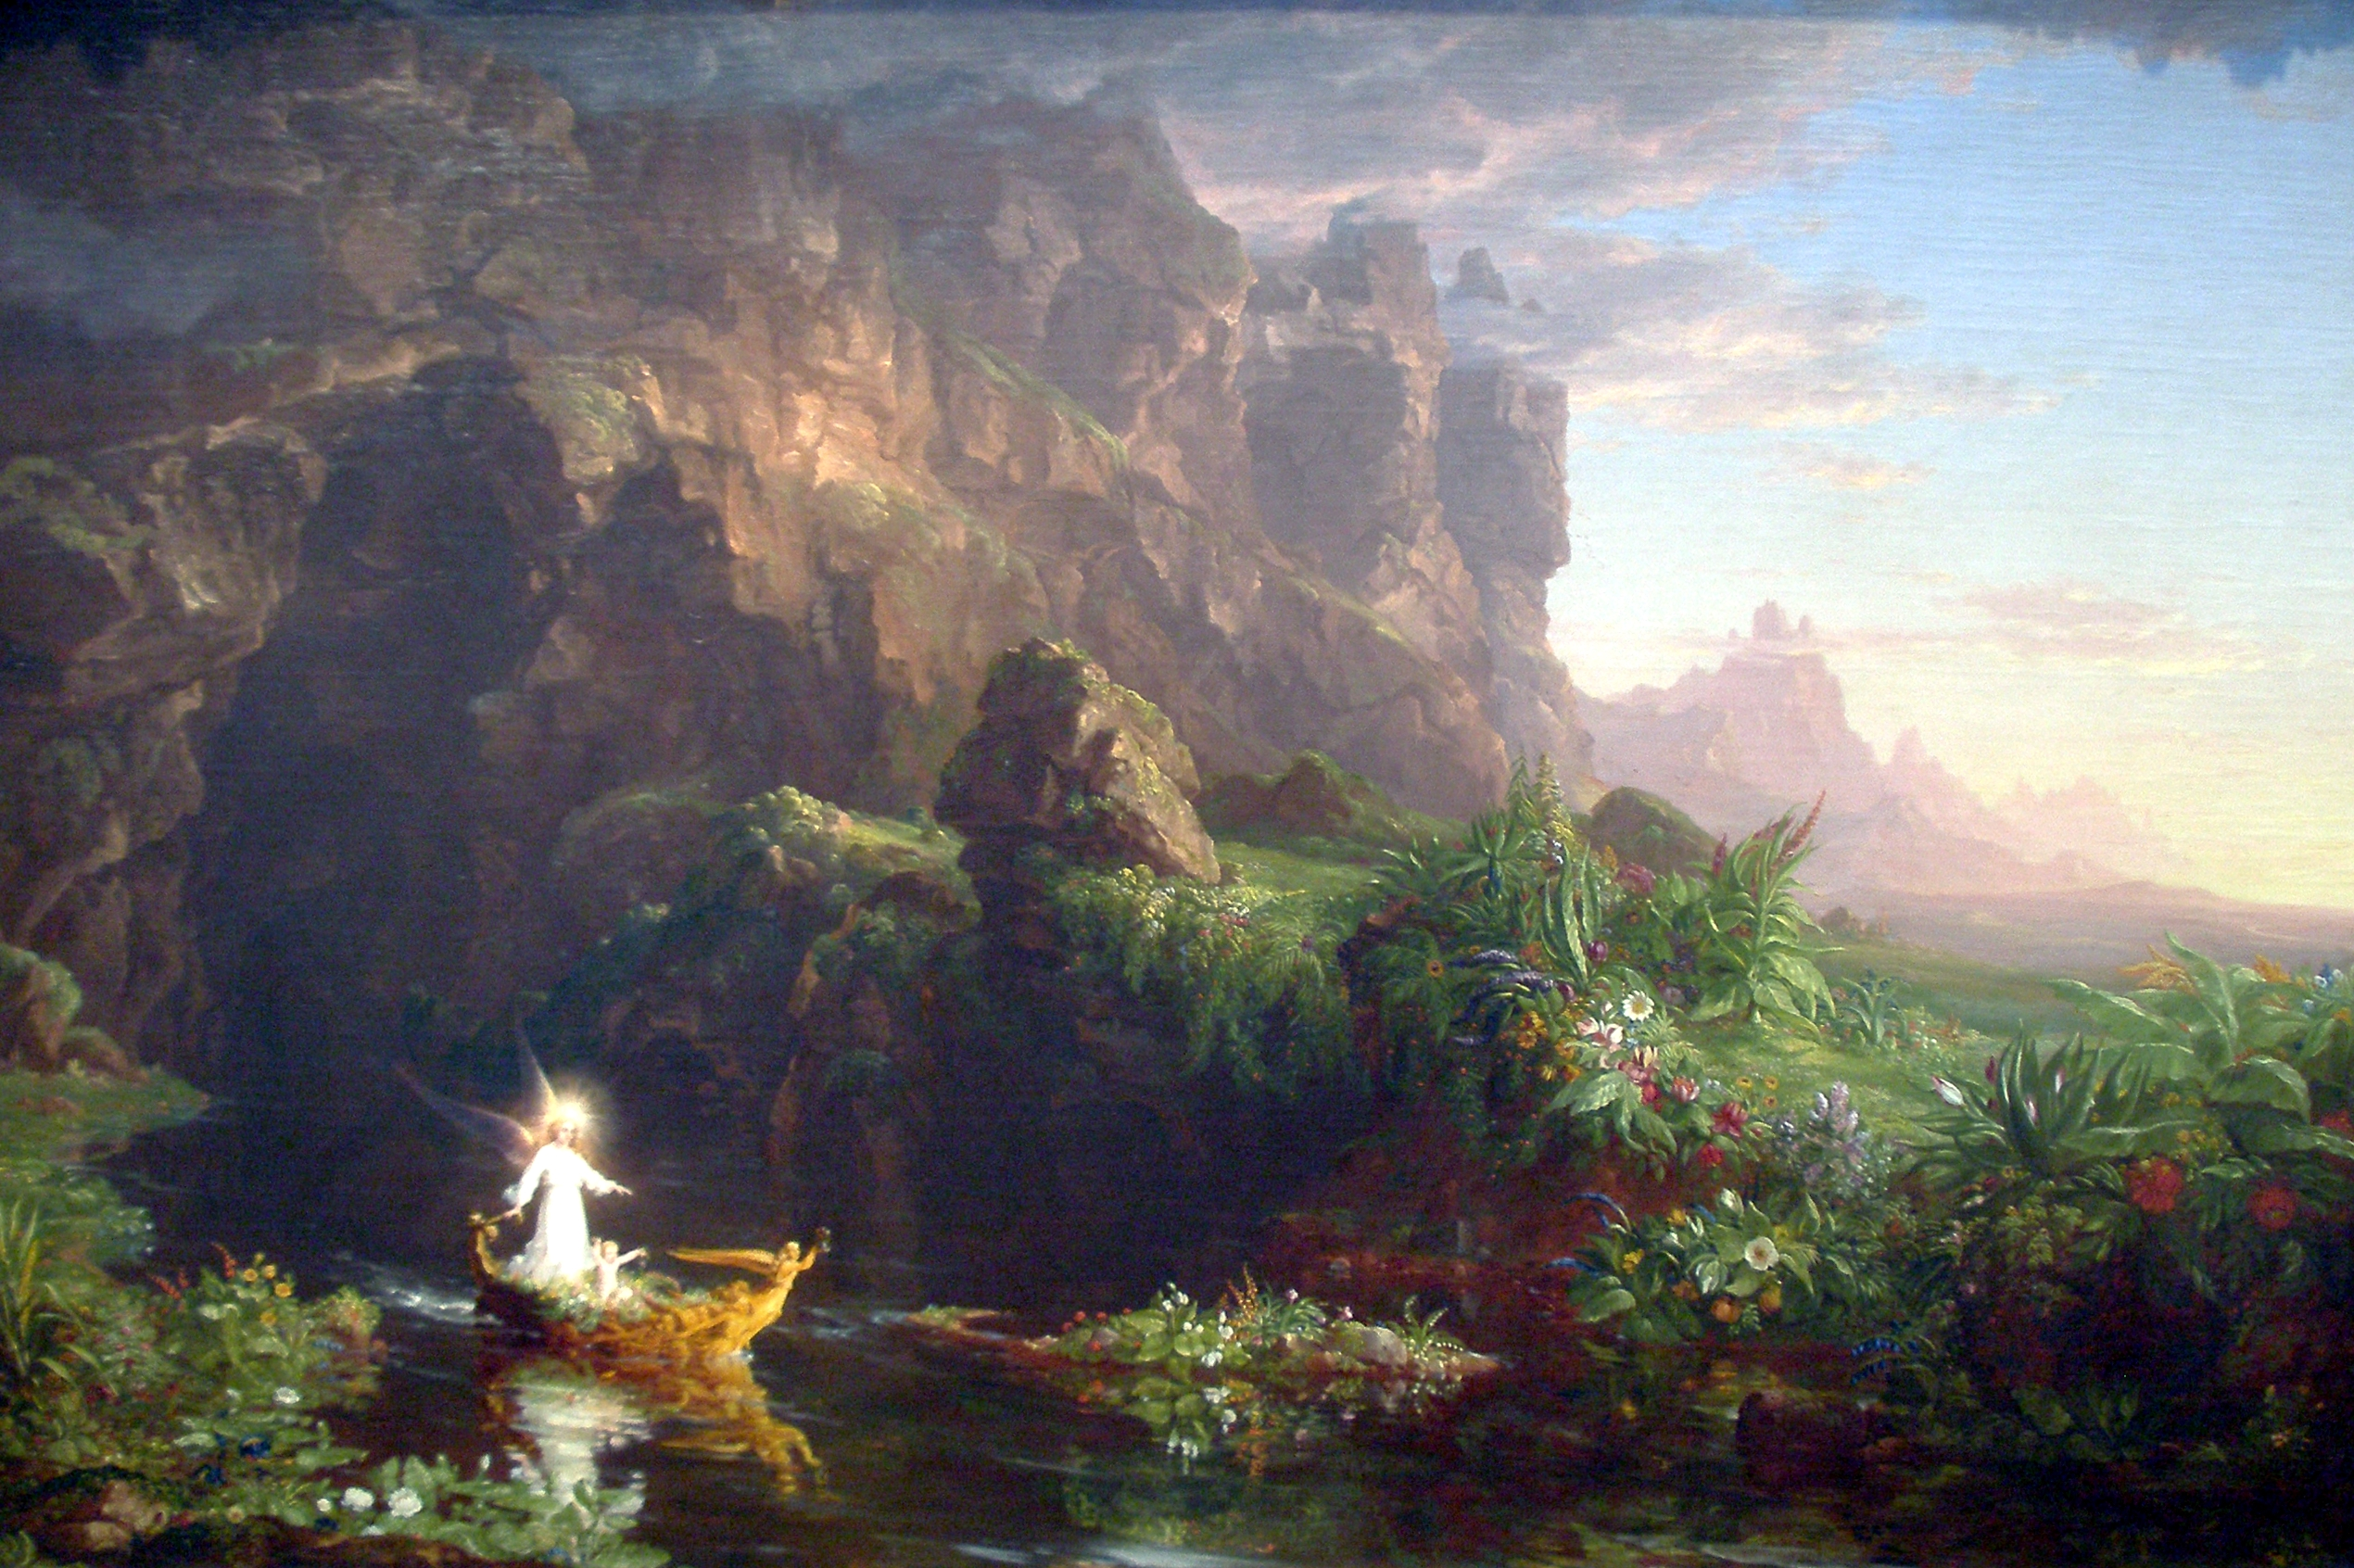 voyage of life analysis The new topic thomas cole voyage of life analysis is one of the most popular assignments among students' documents if you are stuck with writing or missing ideas, scroll down and find.